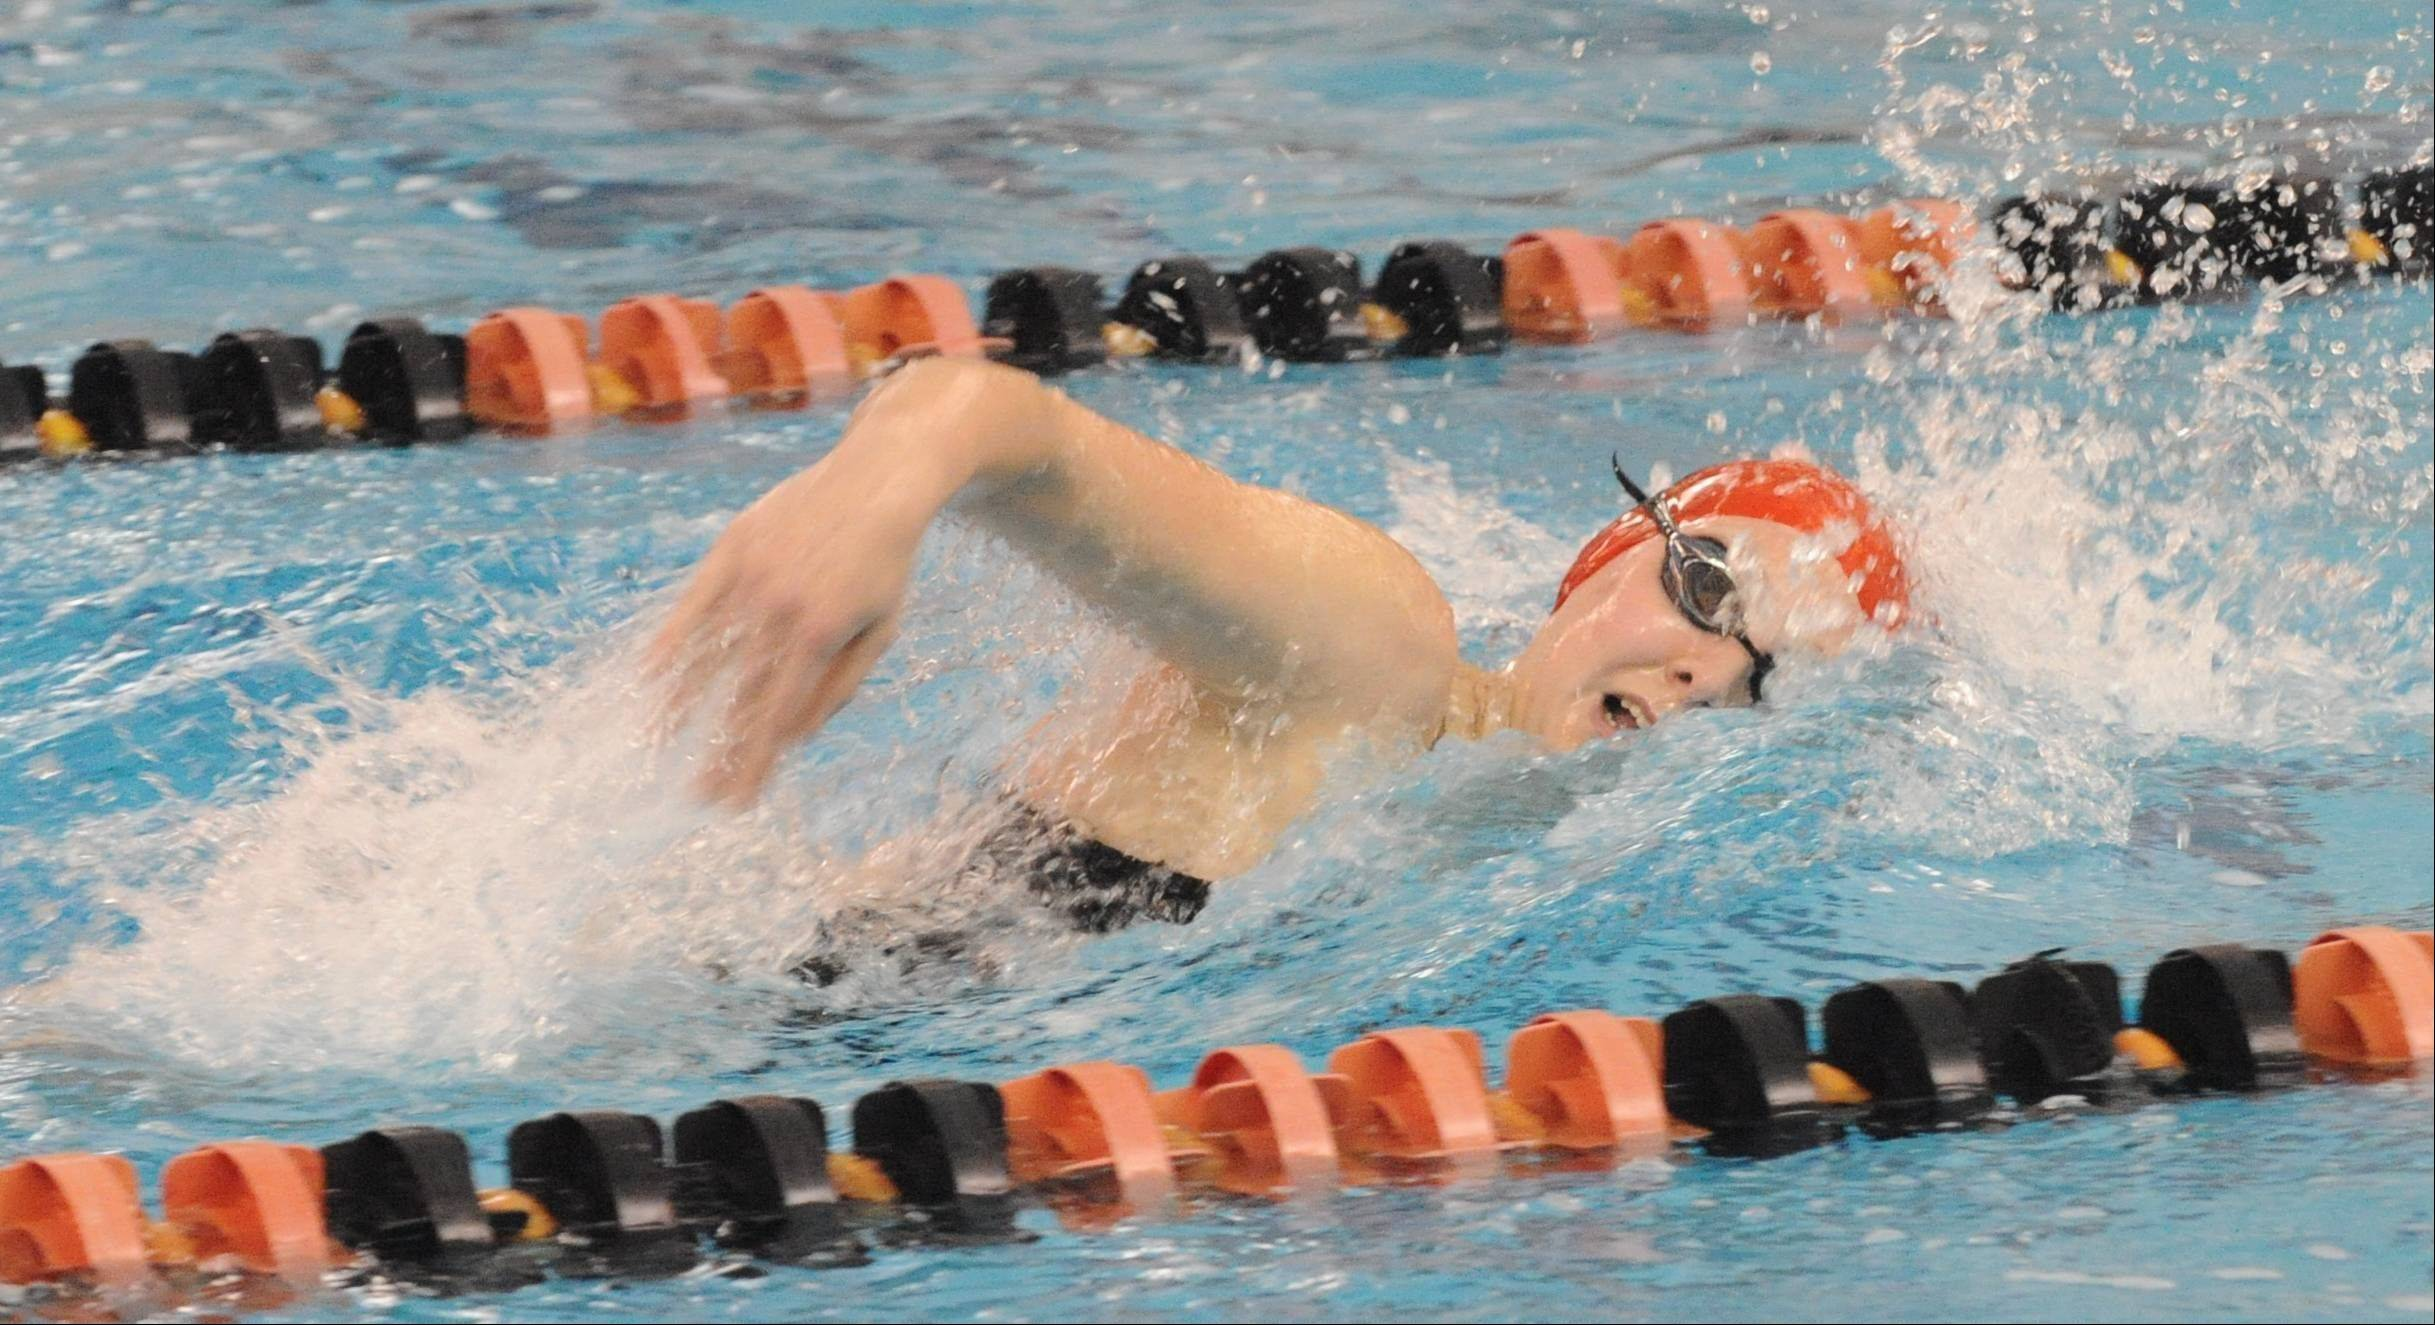 Barrington freshman Kristen Jacobsen provides a winning finish in the 200-yard freestyle in Saturday's Mid-Suburban League meet at Barrington.